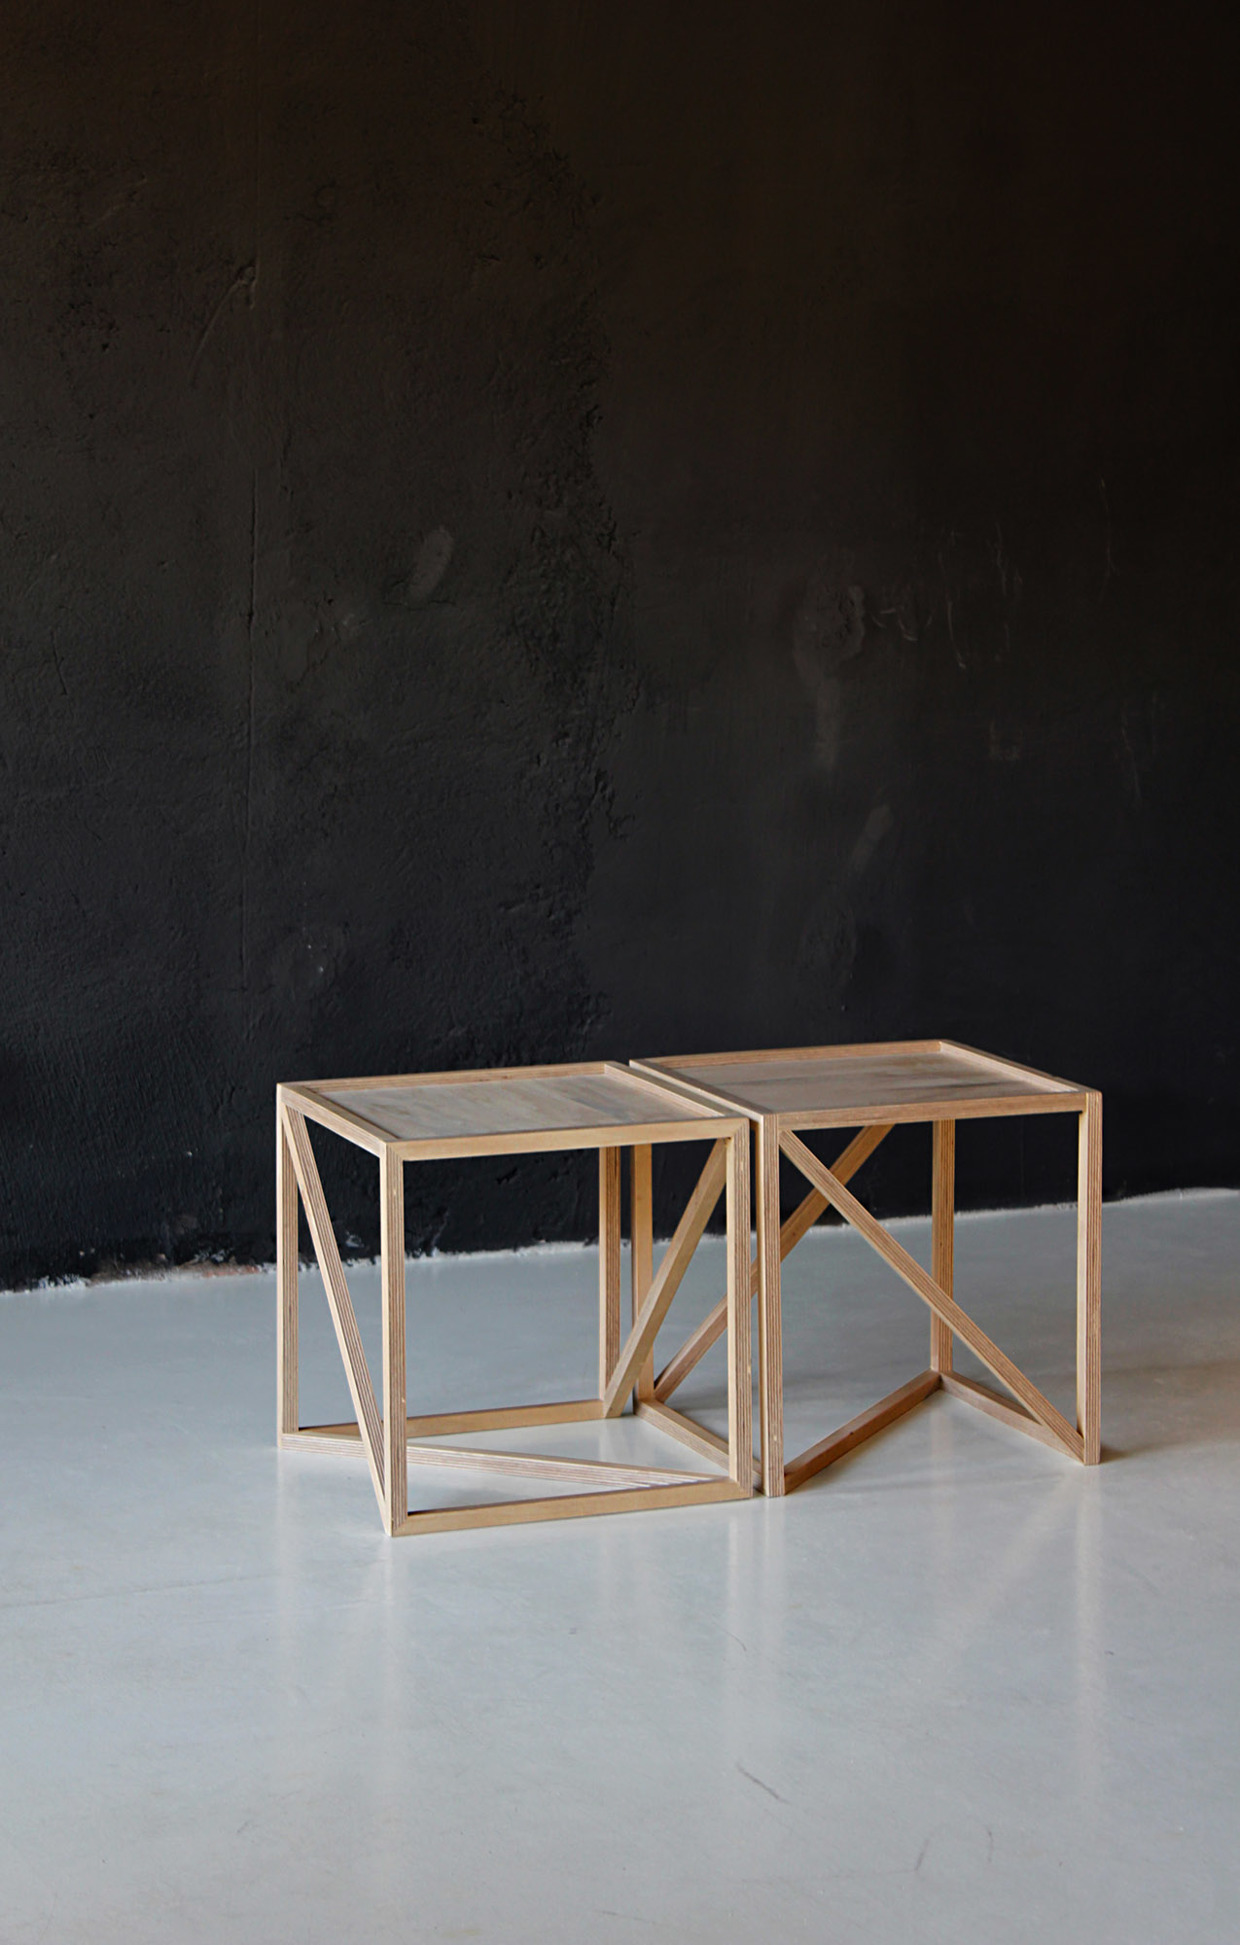 Furniture_P01_Plywood-dontDIY-17